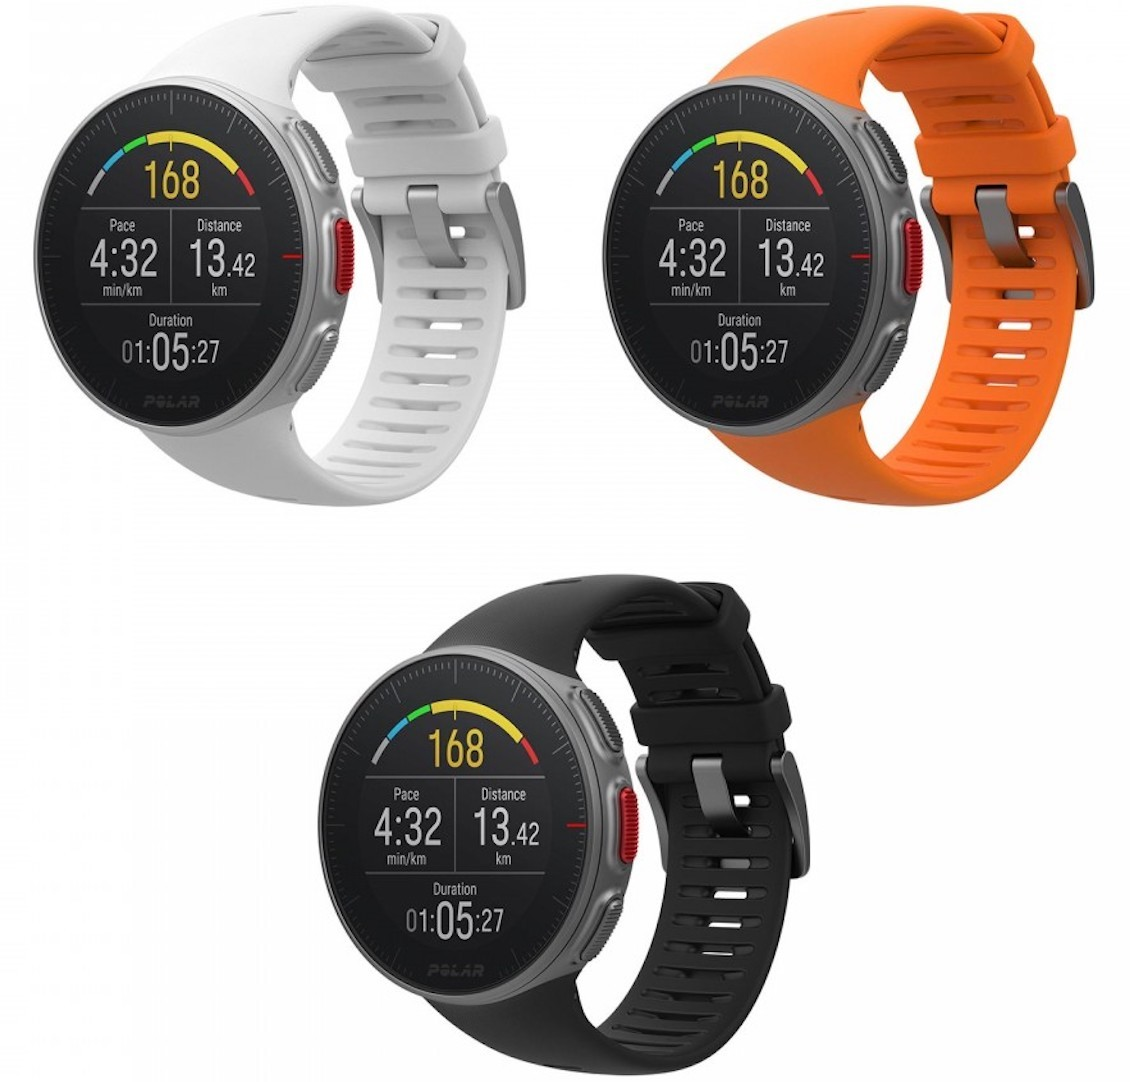 TitaniumGeek polar orologio vantage v 1 Polar Vantage V Review   A Garmin Killer? Cycling Gear Reviews Heart Rate Monitors Running  running Polar HRM garmin cycling apple watch   Image of polar orologio vantage v 1